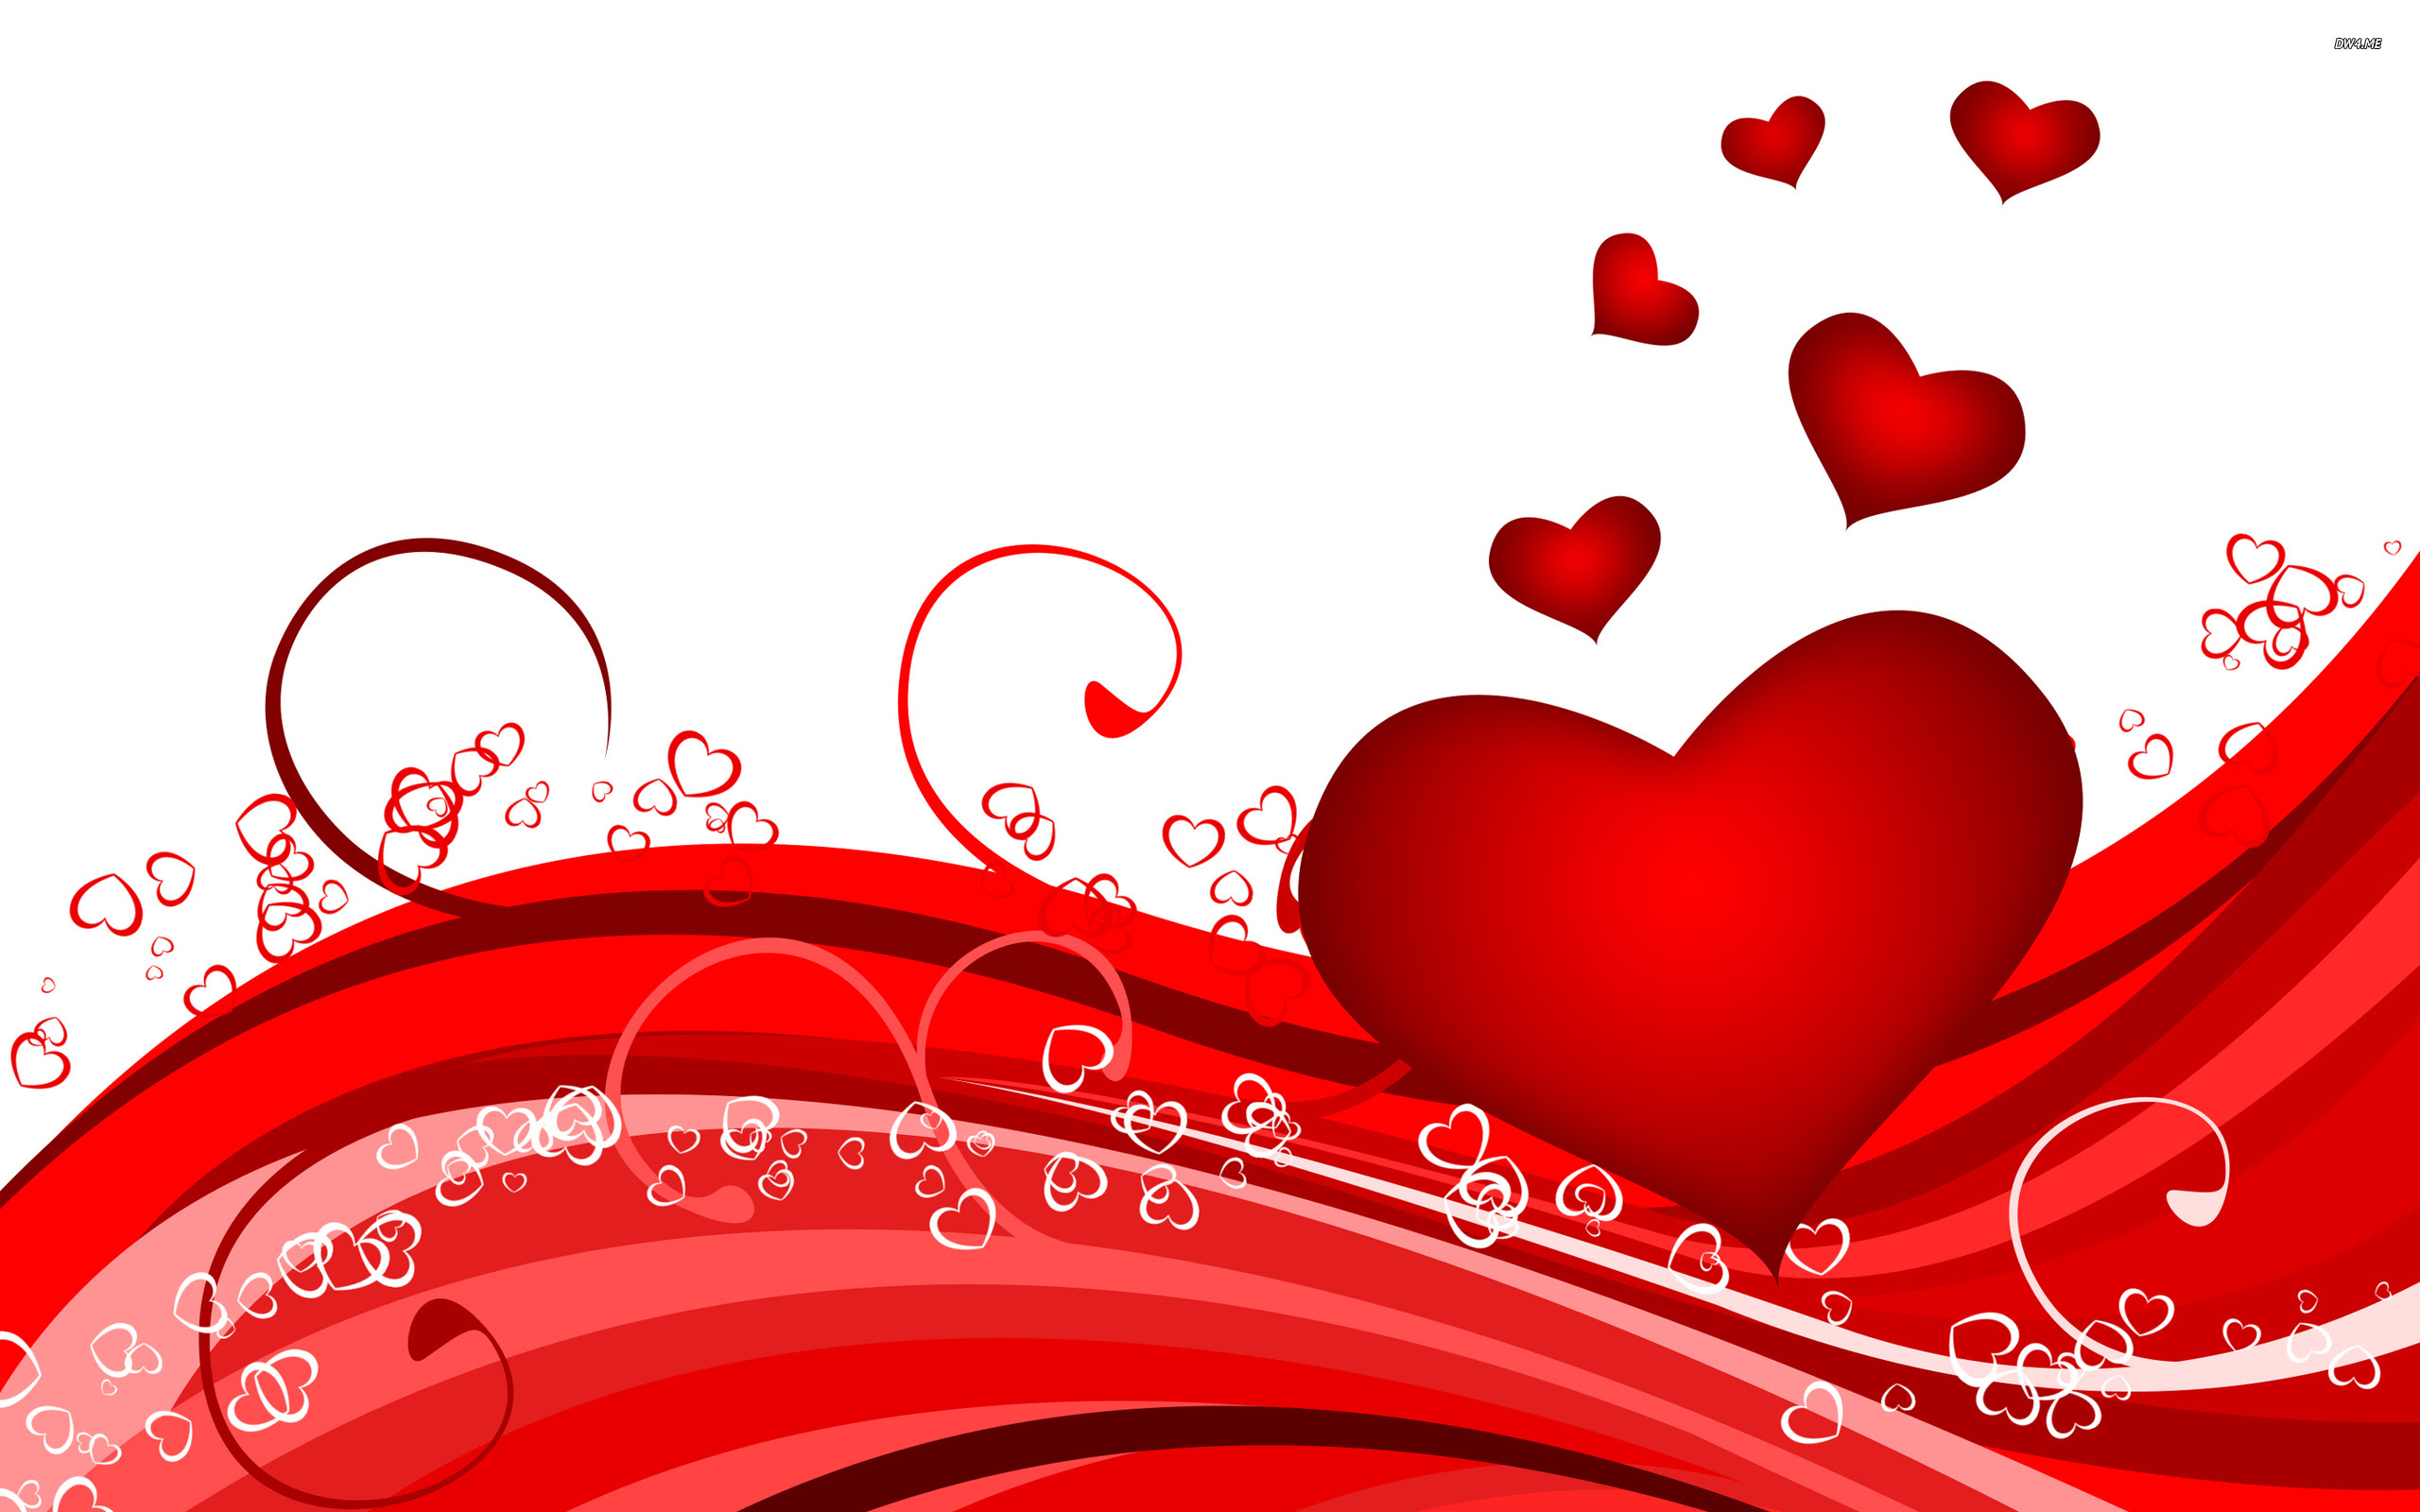 Wallpapers Valentineu2019s Day Free 48 Wallpapers u2013 HD Wallpapers